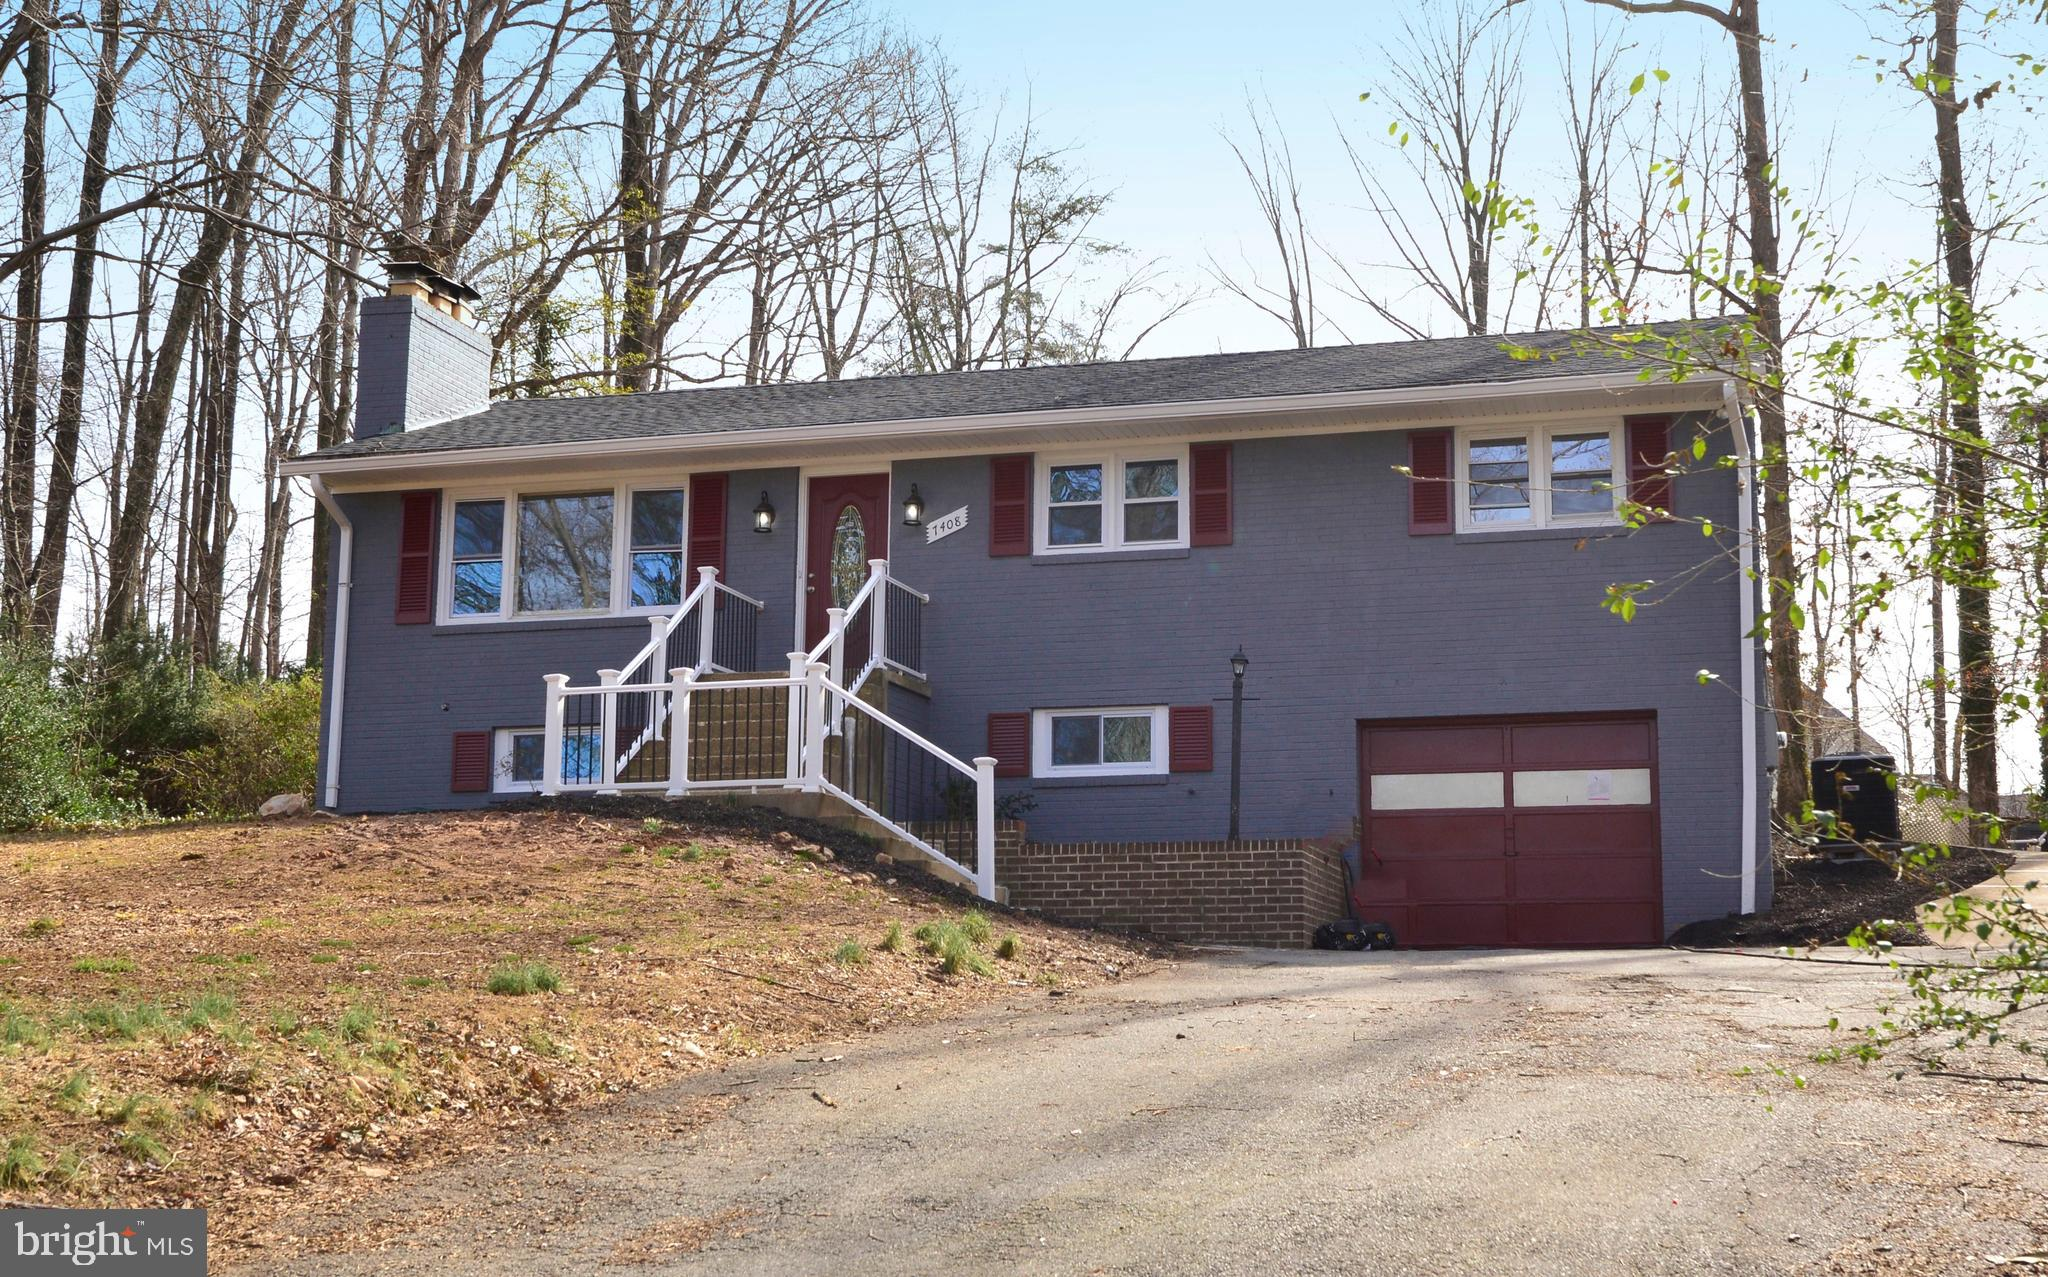 Awesome Renovated 3BR/3BA 2LVL Rambler on 0.51 Acre! New Kitchen w/ 42in cabs, granite, SS applncs, backsplash! Renov BA's w/ nice tilework! French doors to Sunroom w/ Hot Tub. Living Rm w/ FP. LL Rec Room w/ FP. Oversized garage & tons of off-street parking. New roof & windows. Backyard w/ swimming pool. Very peaceful yet only mins to 95/395/495, Ft Belvoir, NGA, Pentagon, DC!